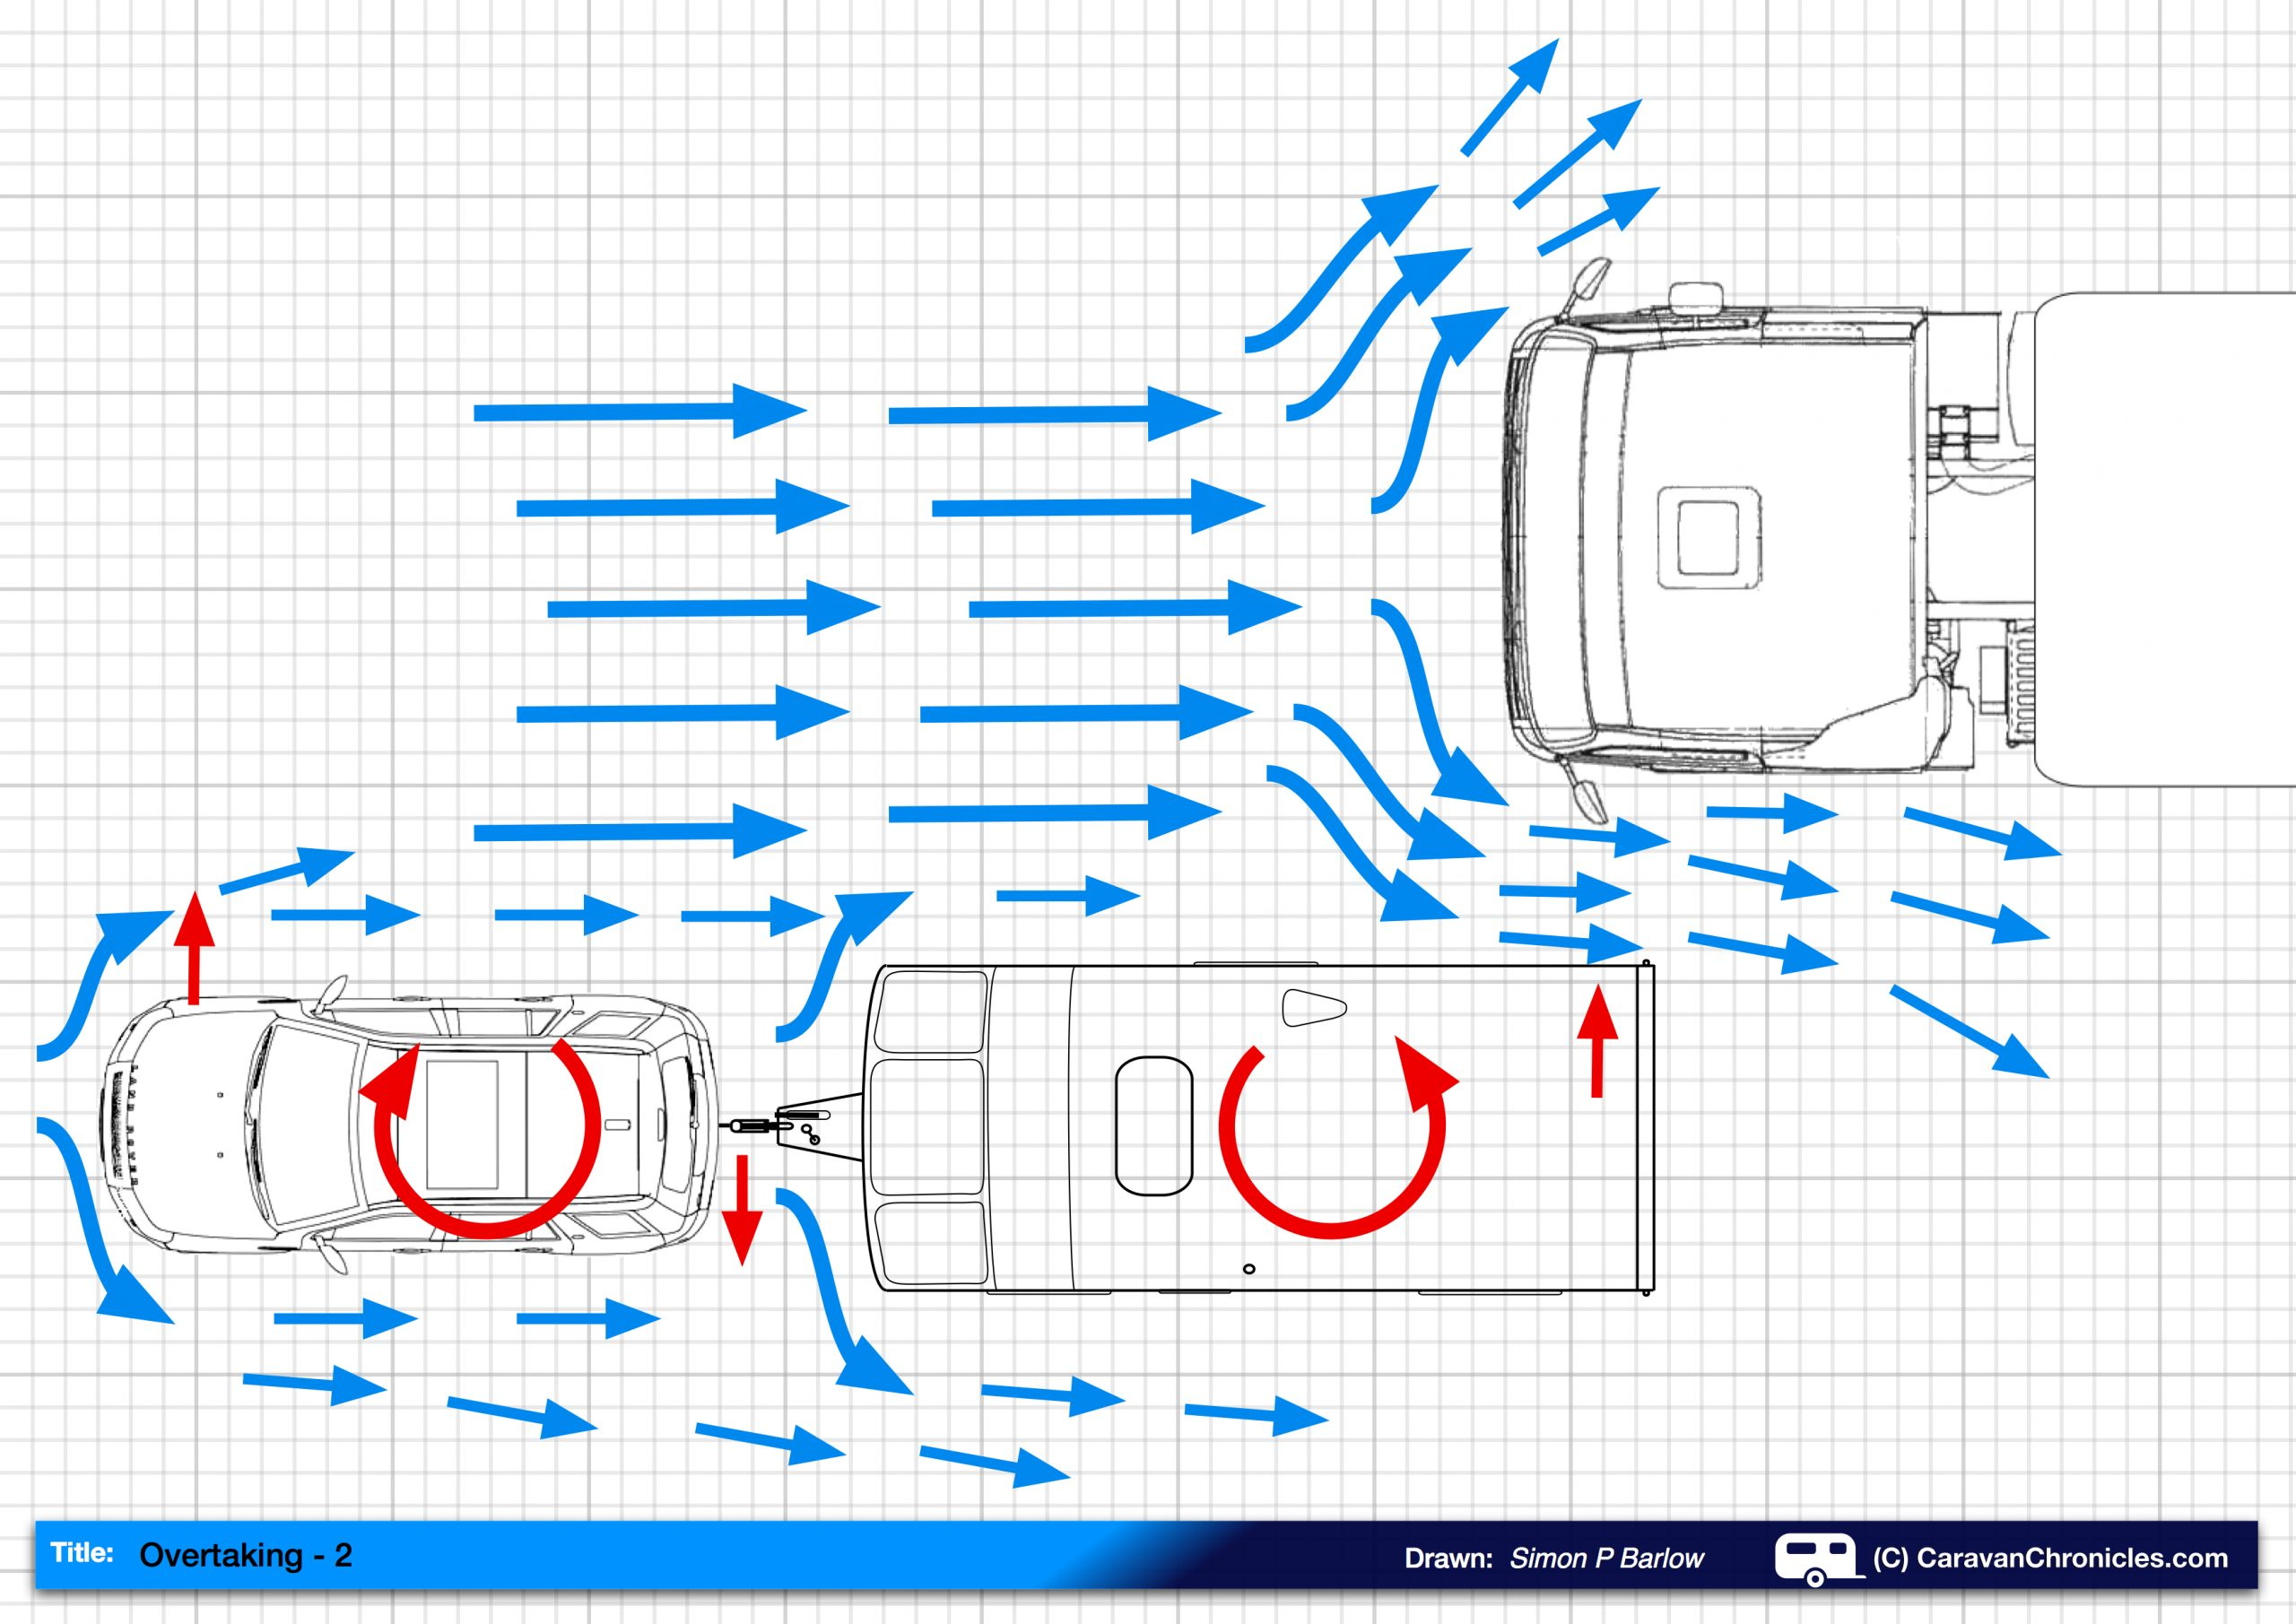 Dynamics Of Towing Overtaking 2